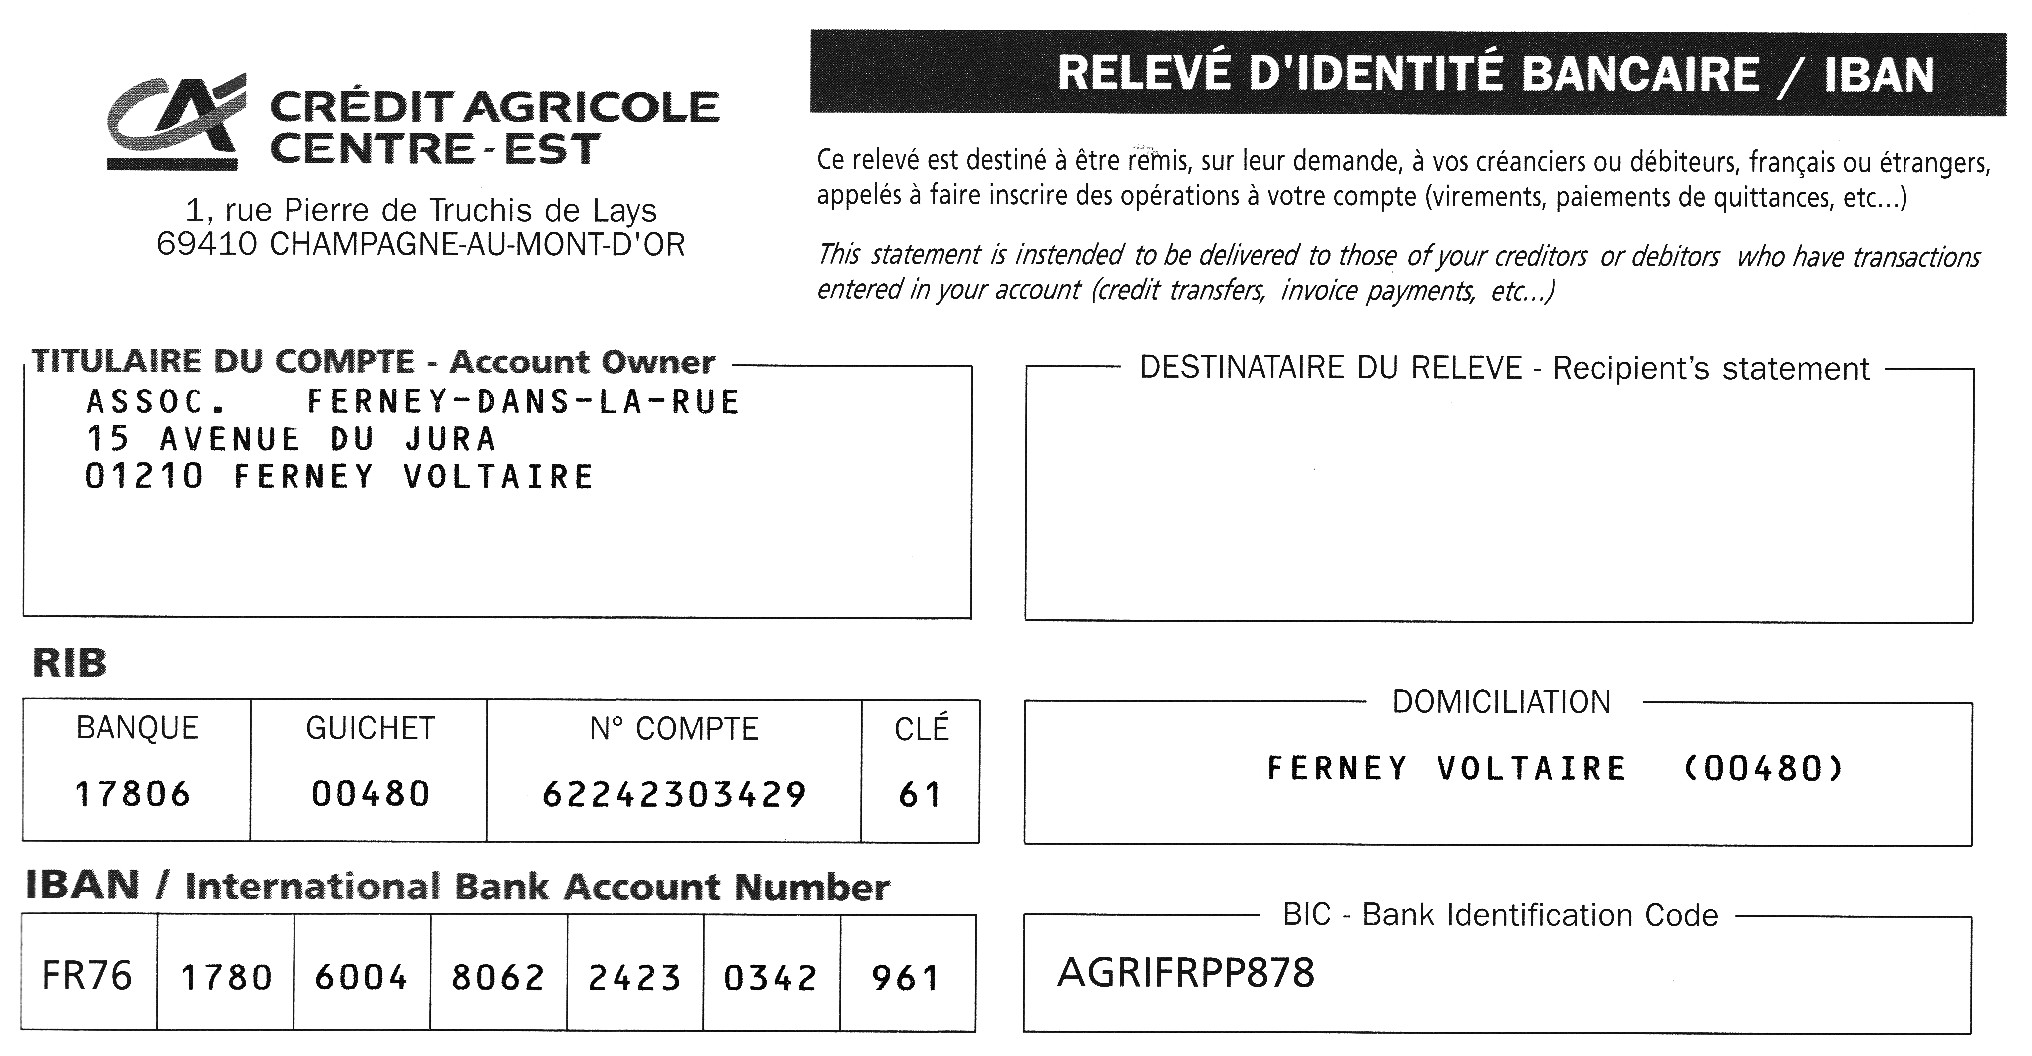 Rib Bank Is Cle Rib Part Of Bank Account Number For French Banks Help